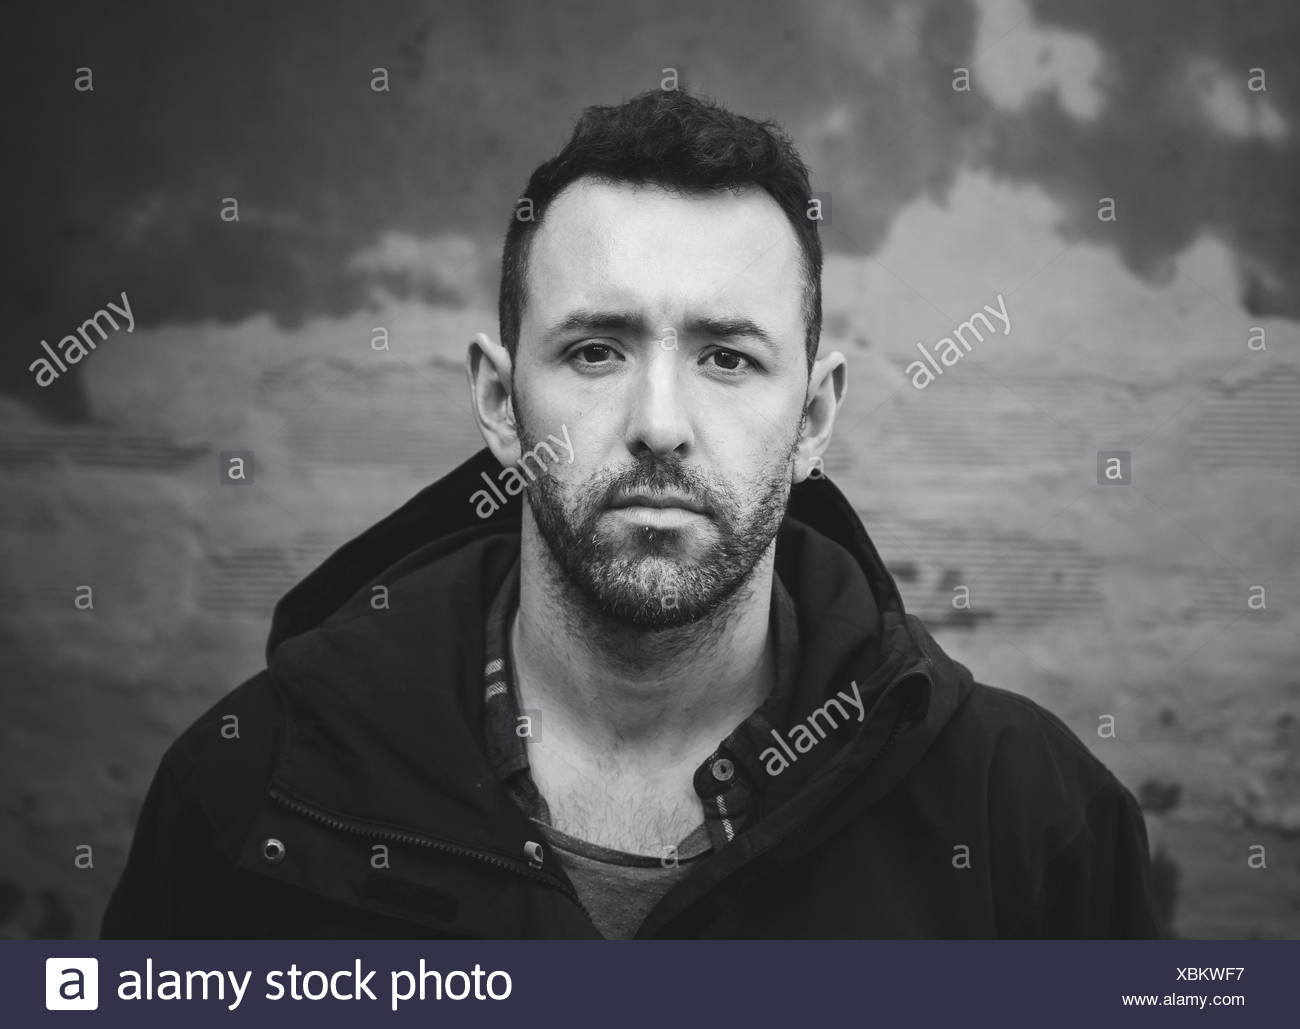 Portrait of man with full beard - Stock Image